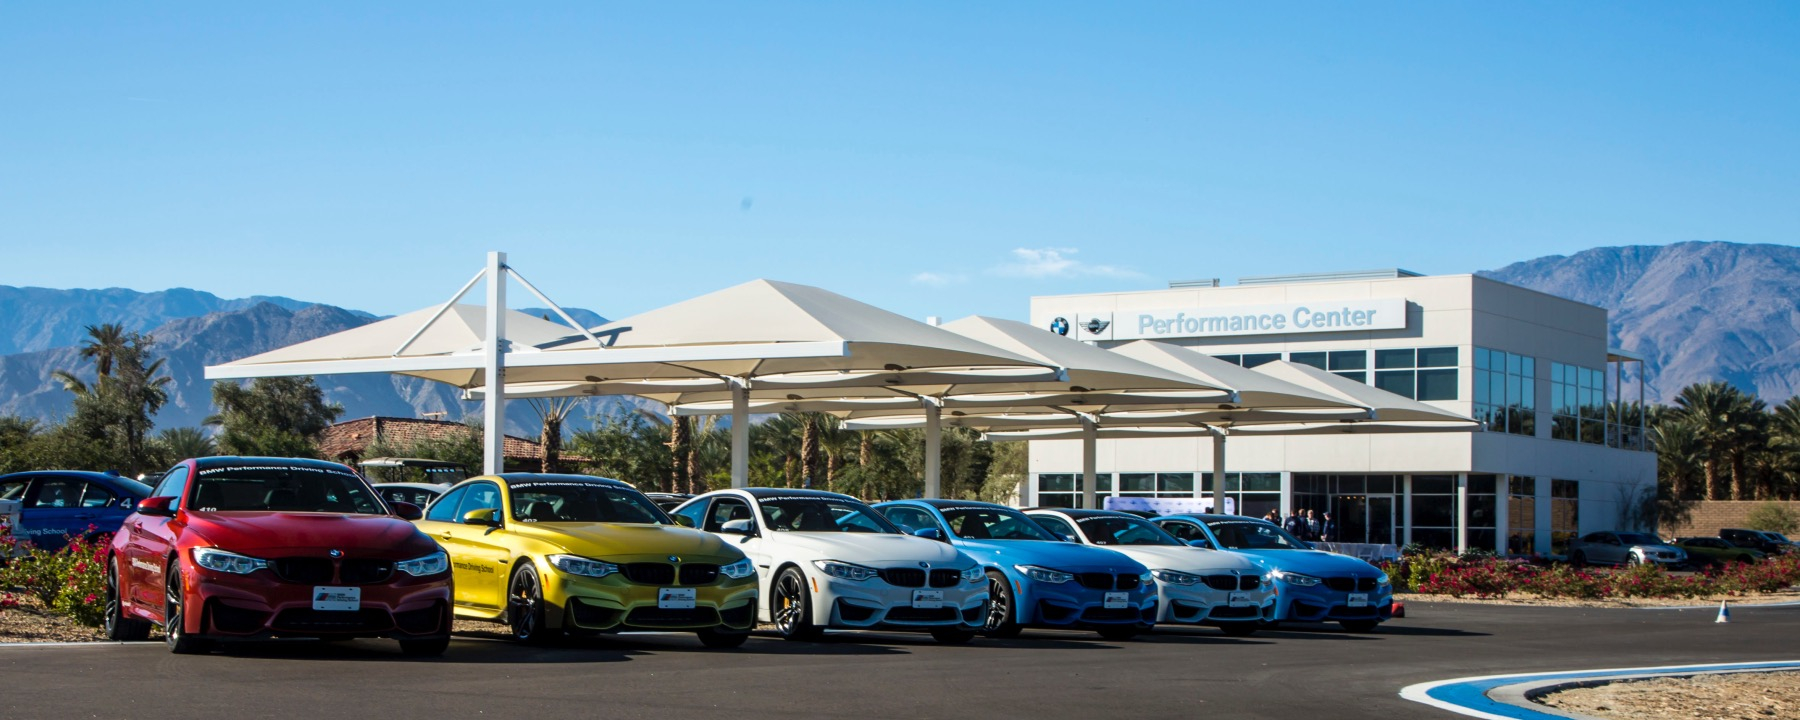 BMW Of Palm Springs' Drive4Kids Event Raises $50,000 For